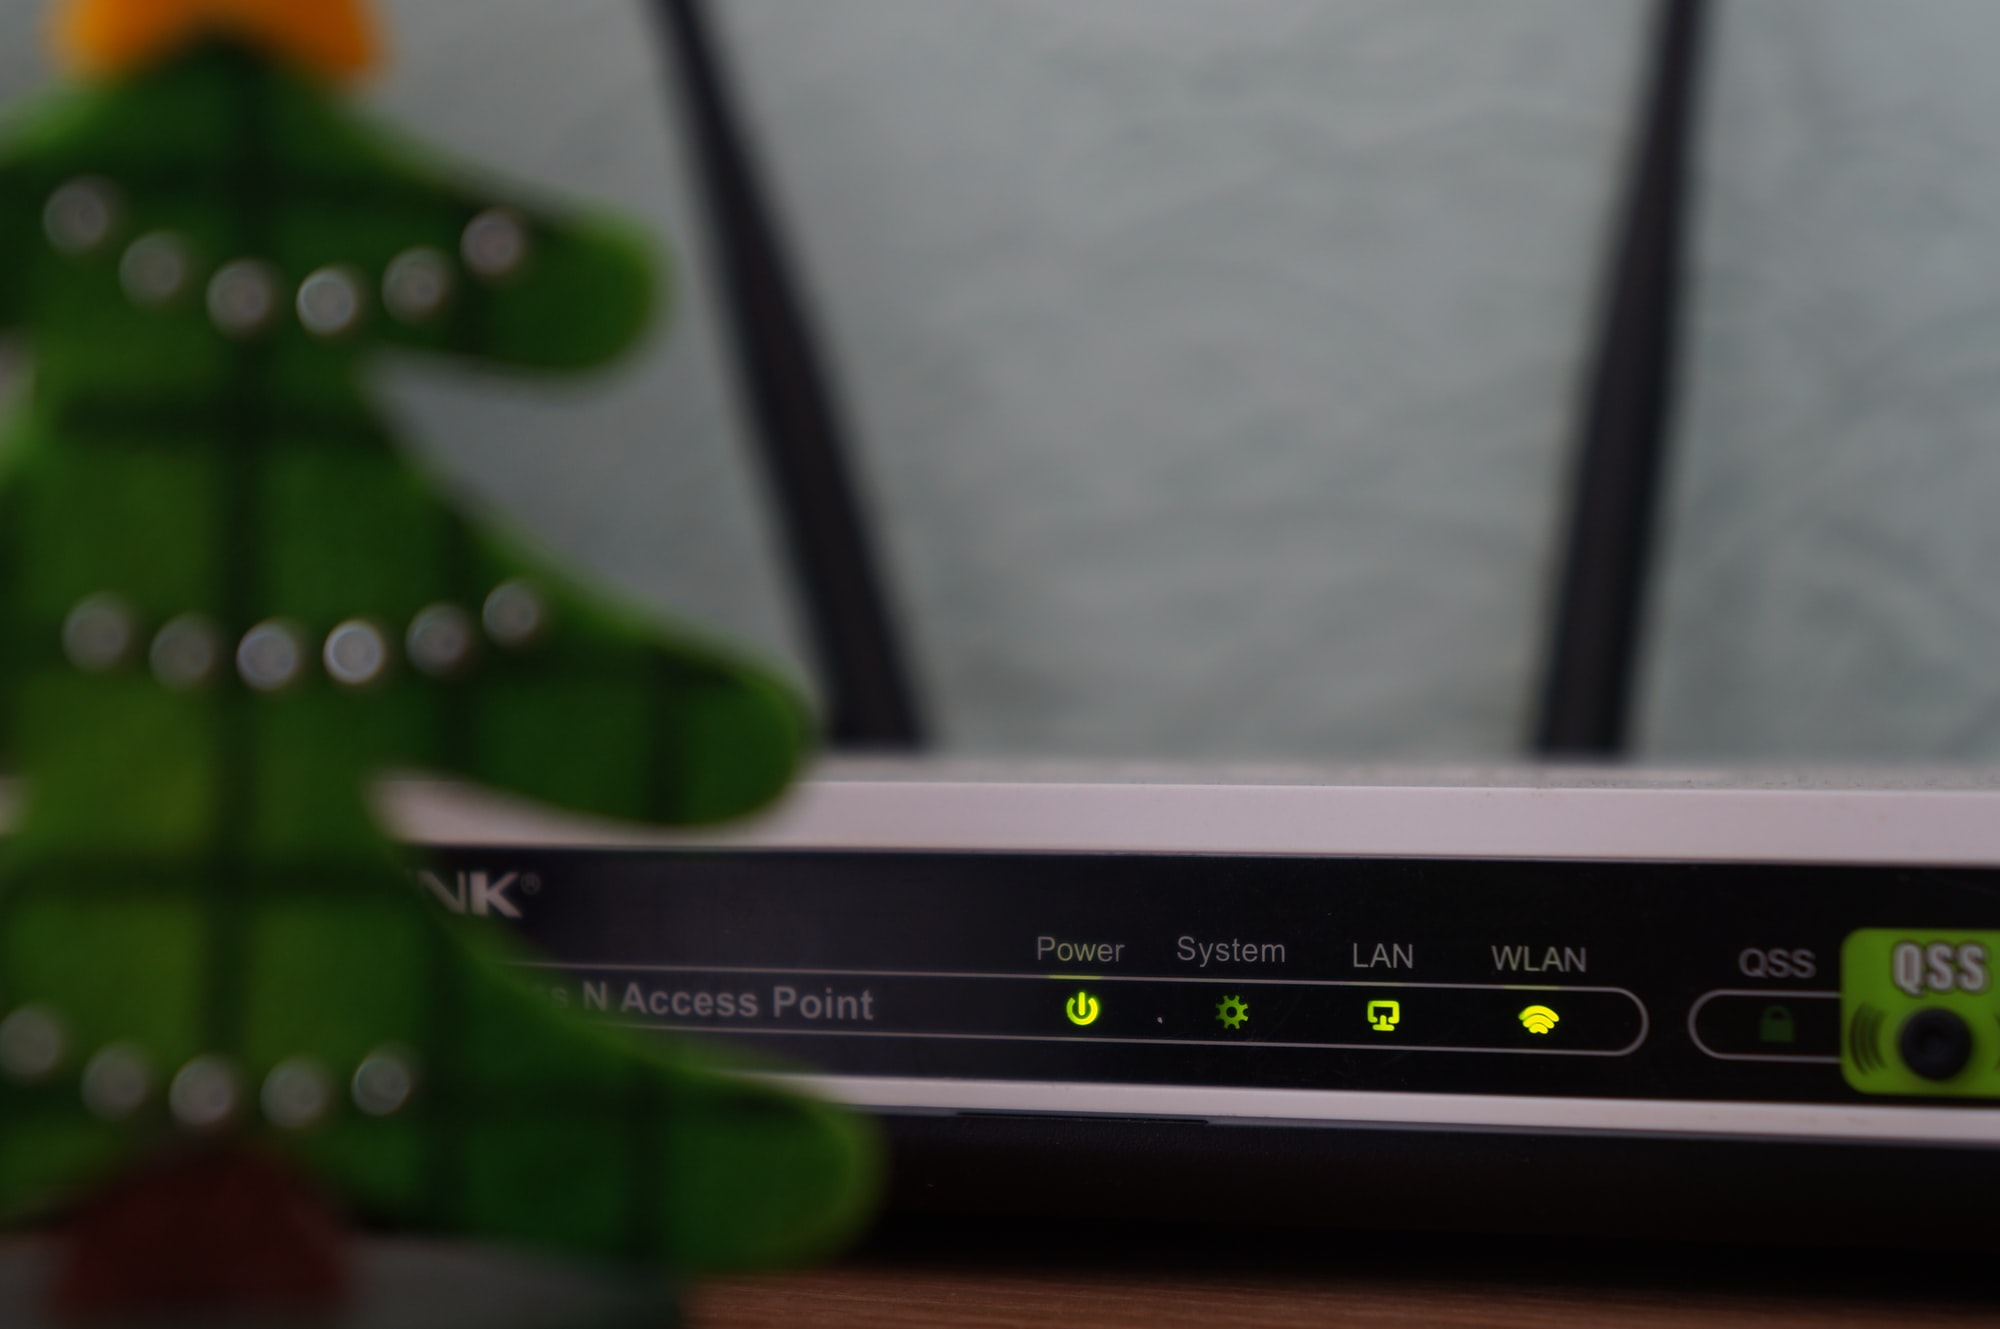 Reboot your home router/modem on a schedule